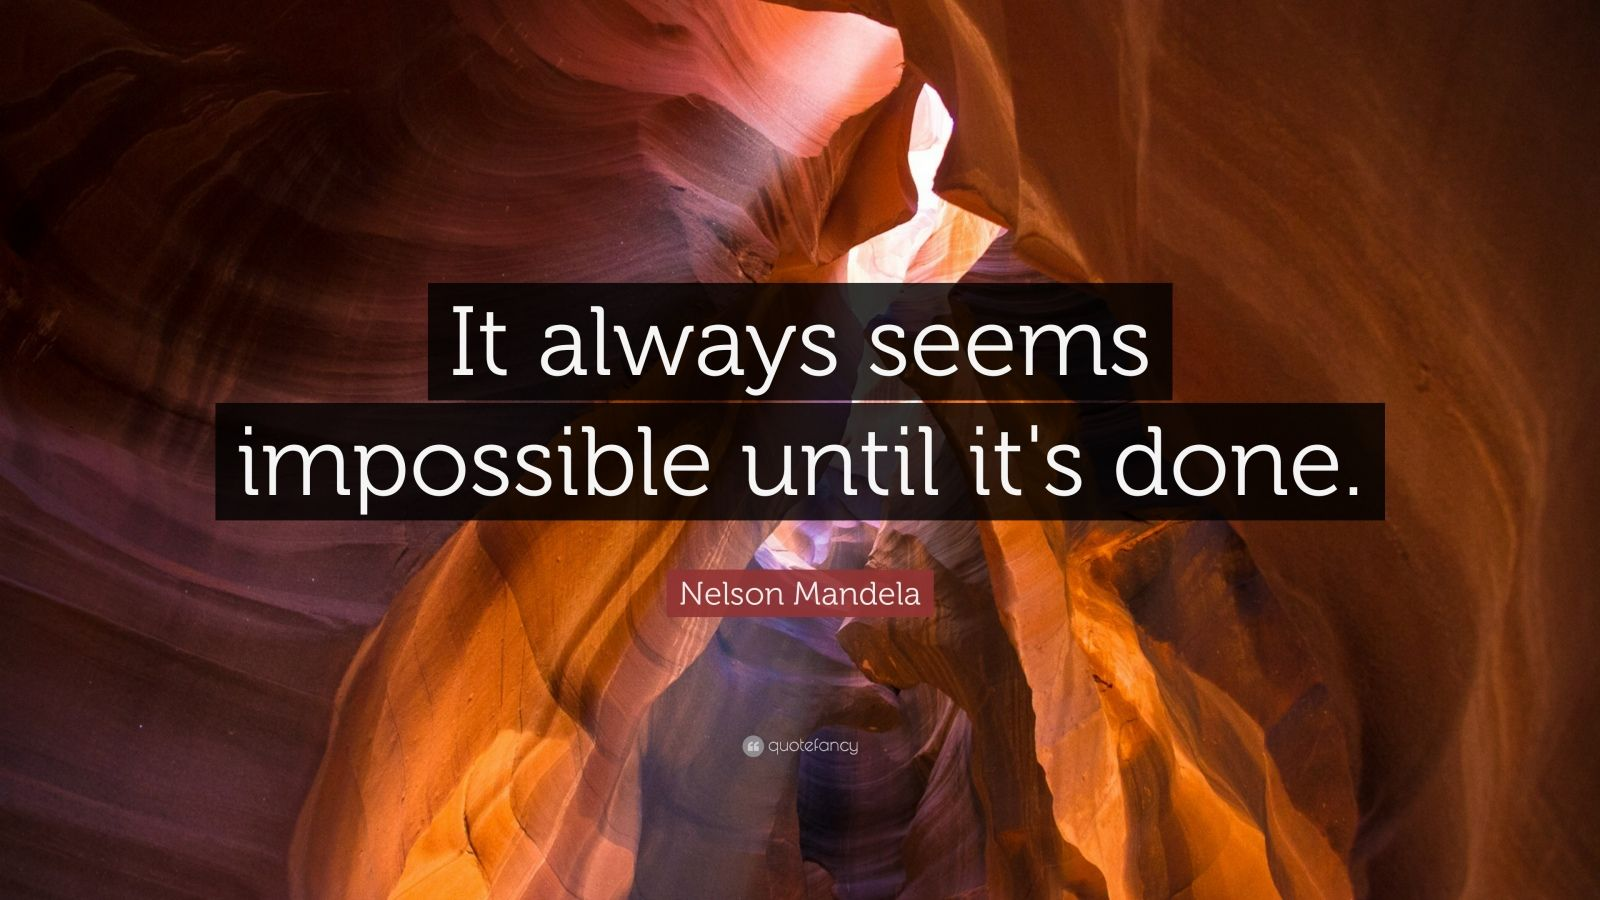 Impossible Quote Wallpaper Nelson Mandela Quote It Always Seems Impossible Until It